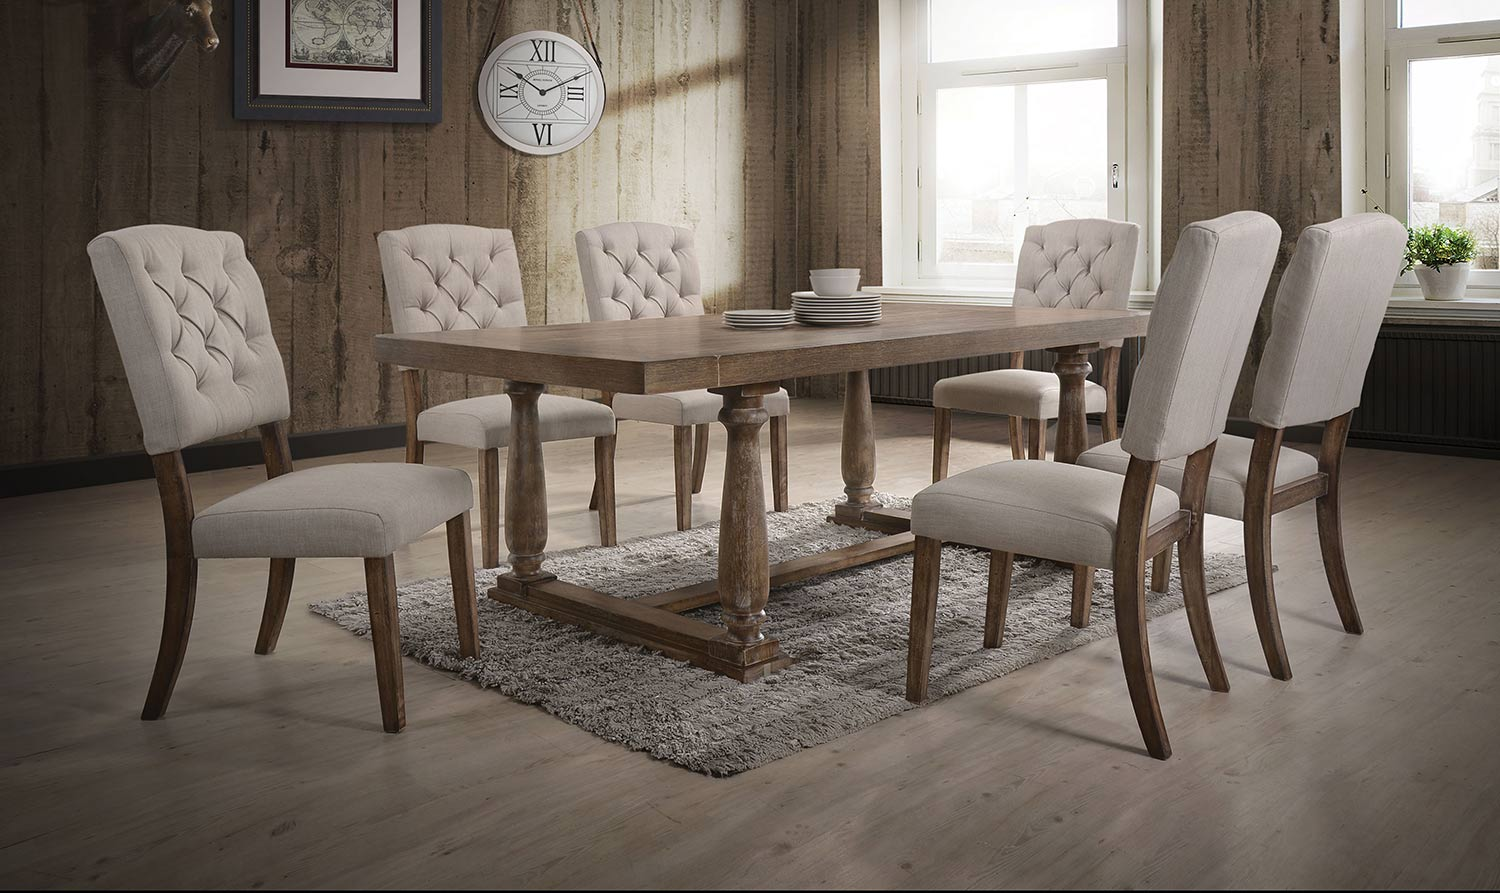 Acme Bernard Dining Set - Weathered Oak